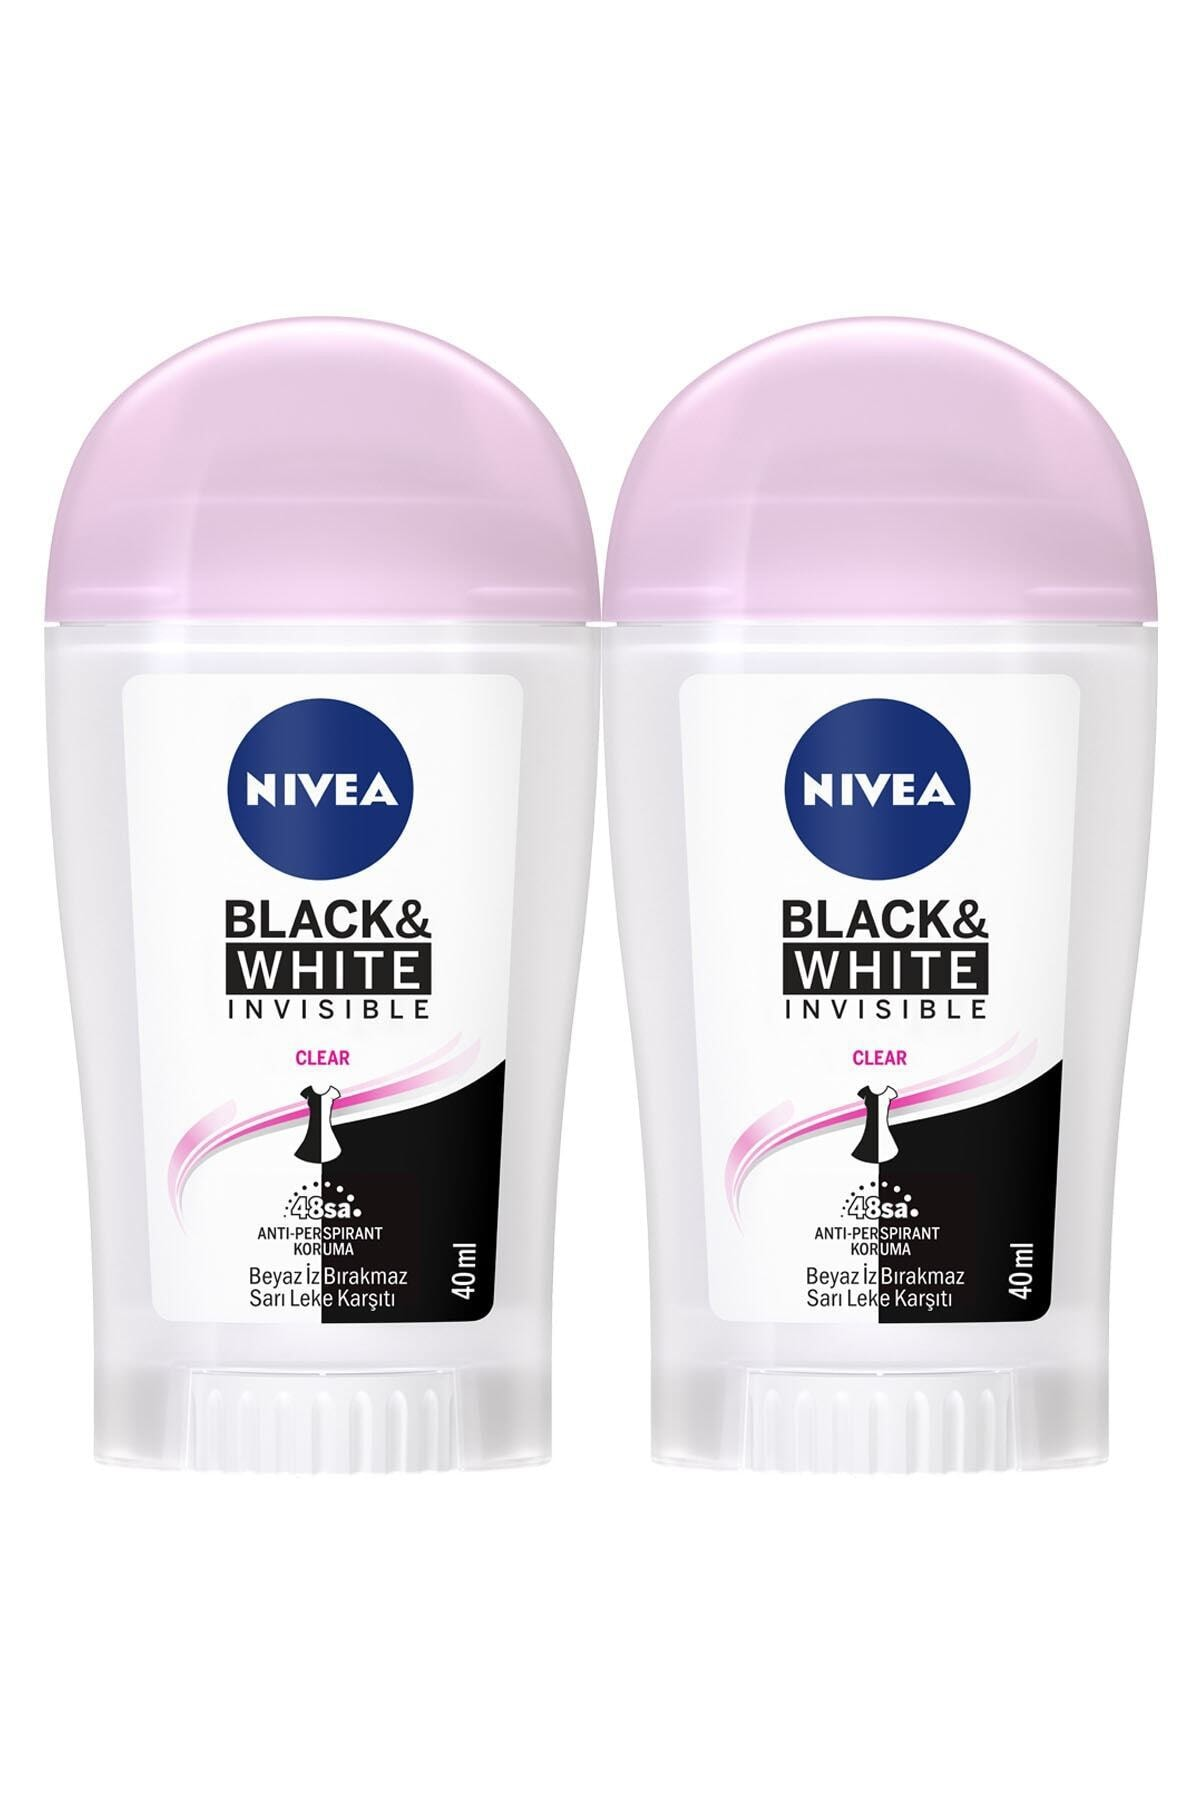 Nivea Invisible Black & White Kadın Deodorant Stick 40 ml  2'Li 1